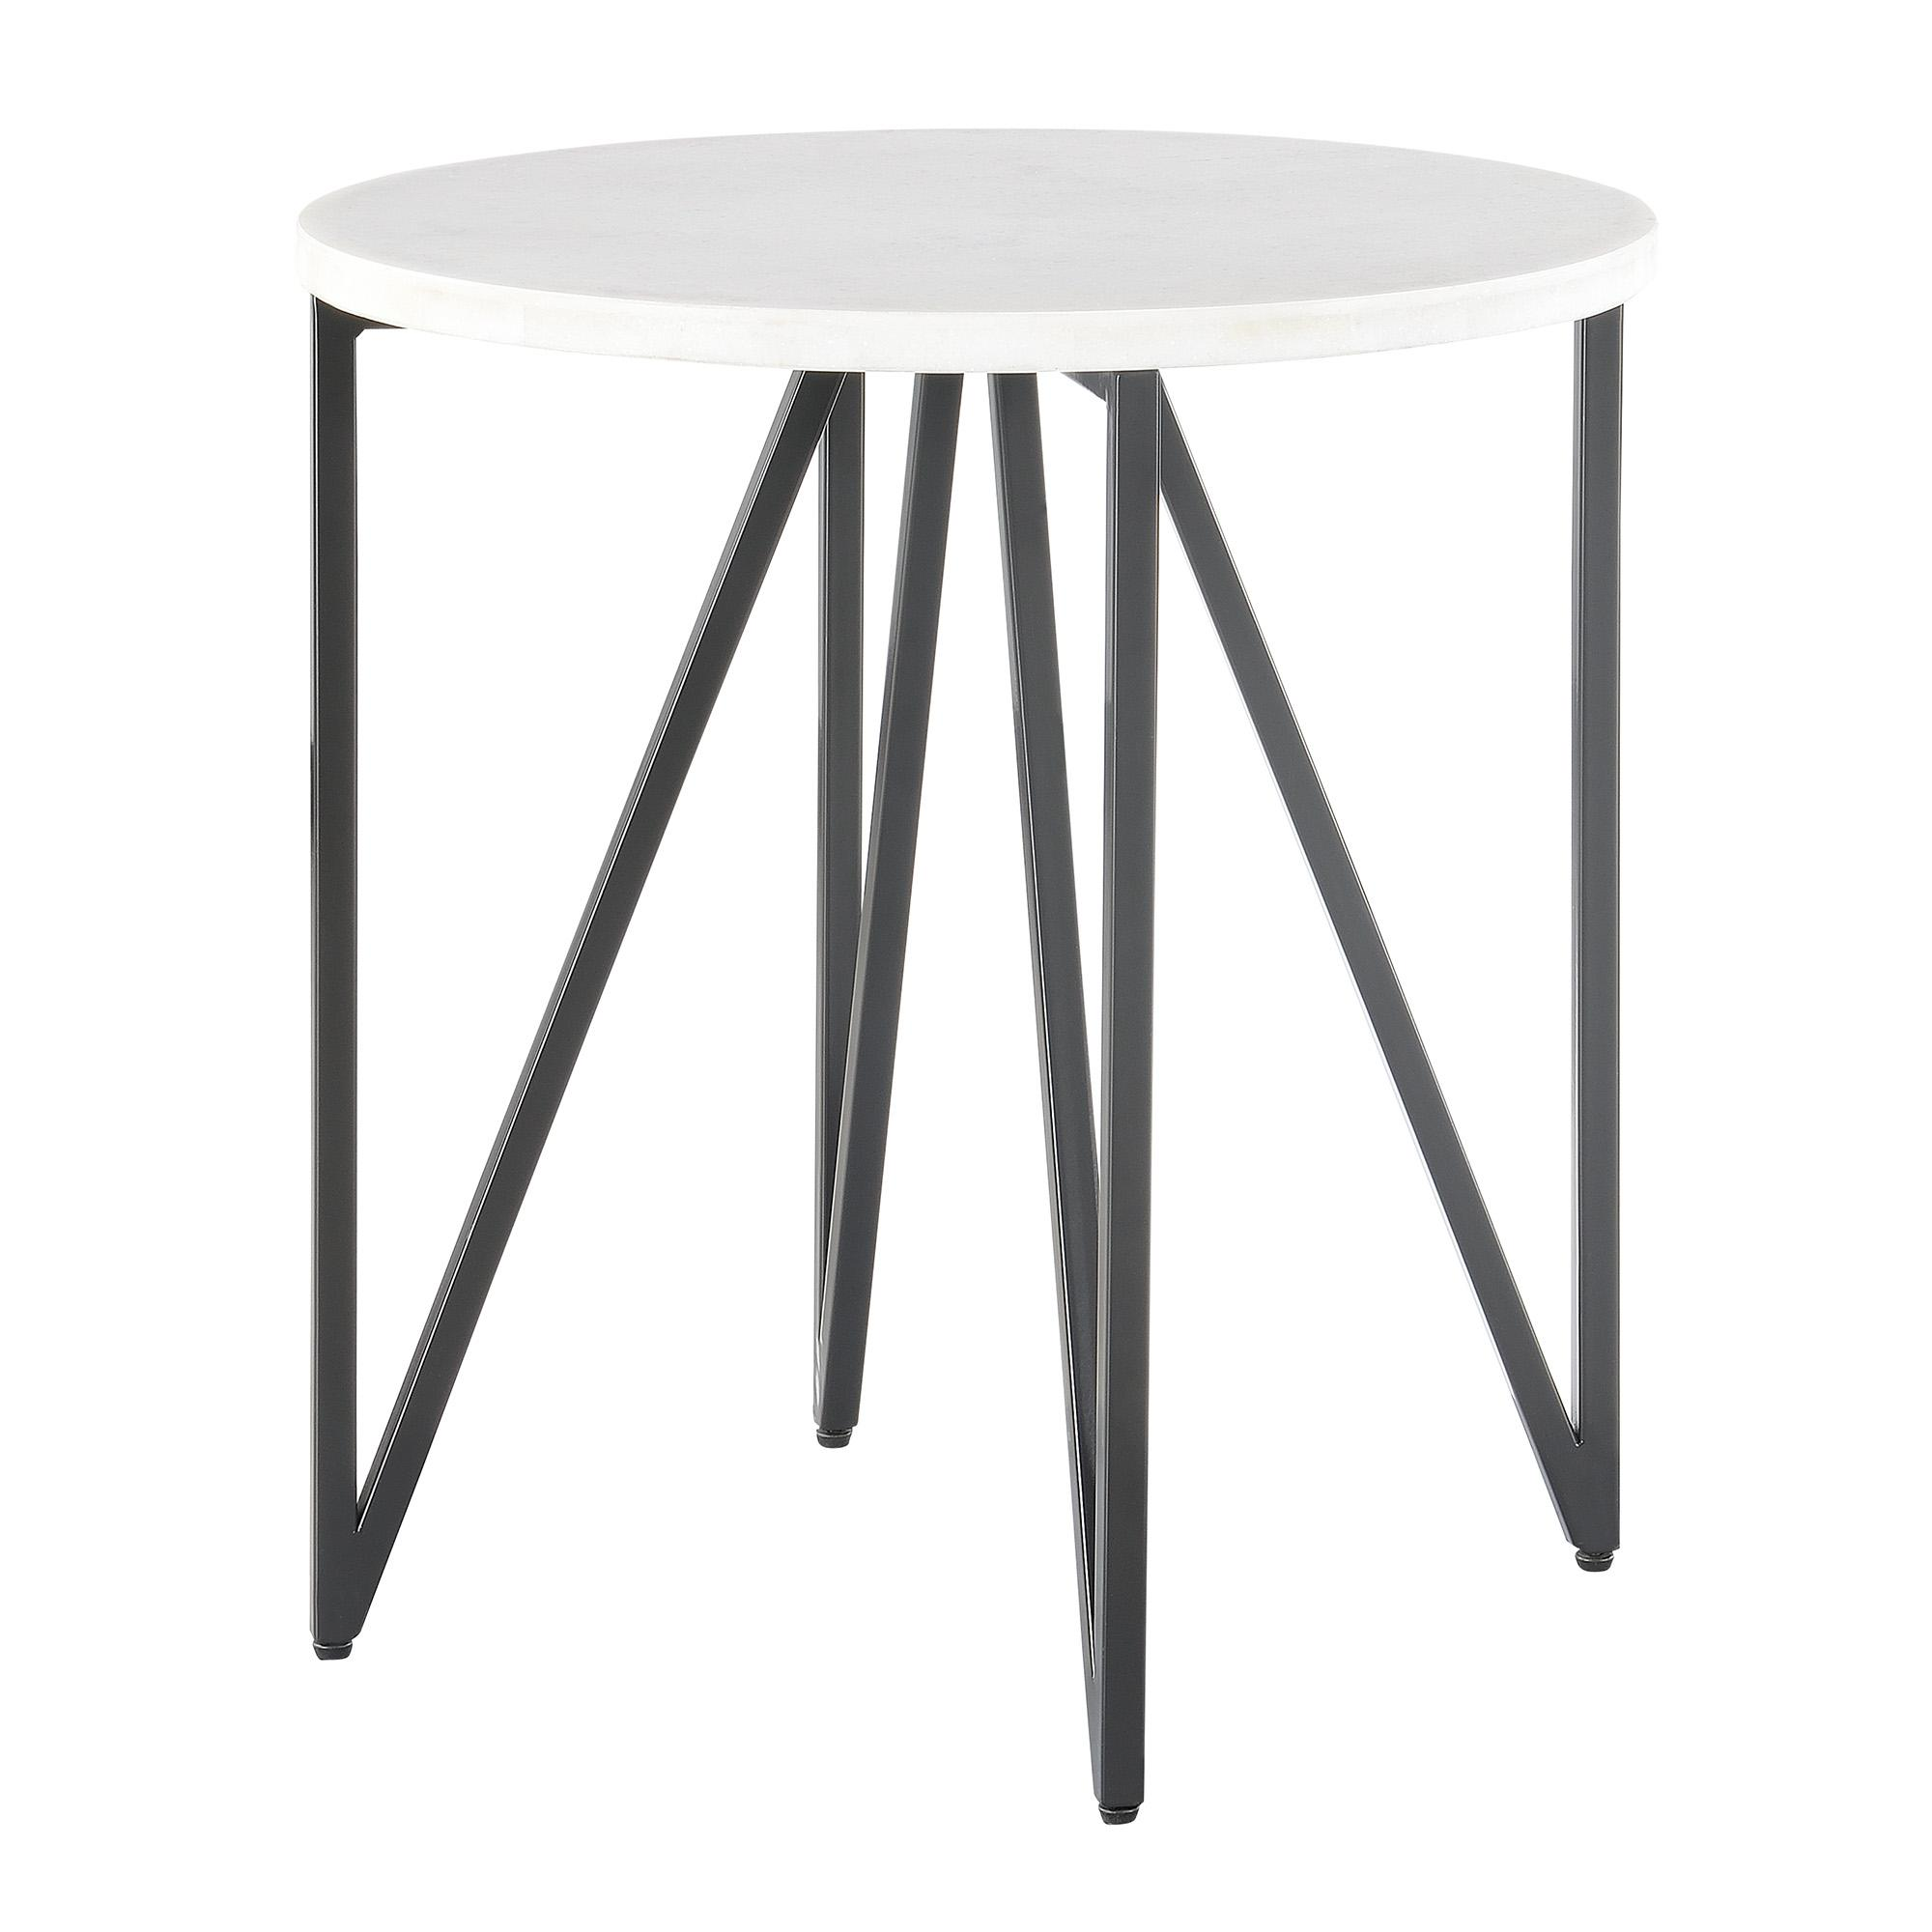 ket house kinsler black round marble top end table the classy home pkt click enlarge inch outdoor homesense cushions iron patio side brushed nickel floor lamps lexington cherry